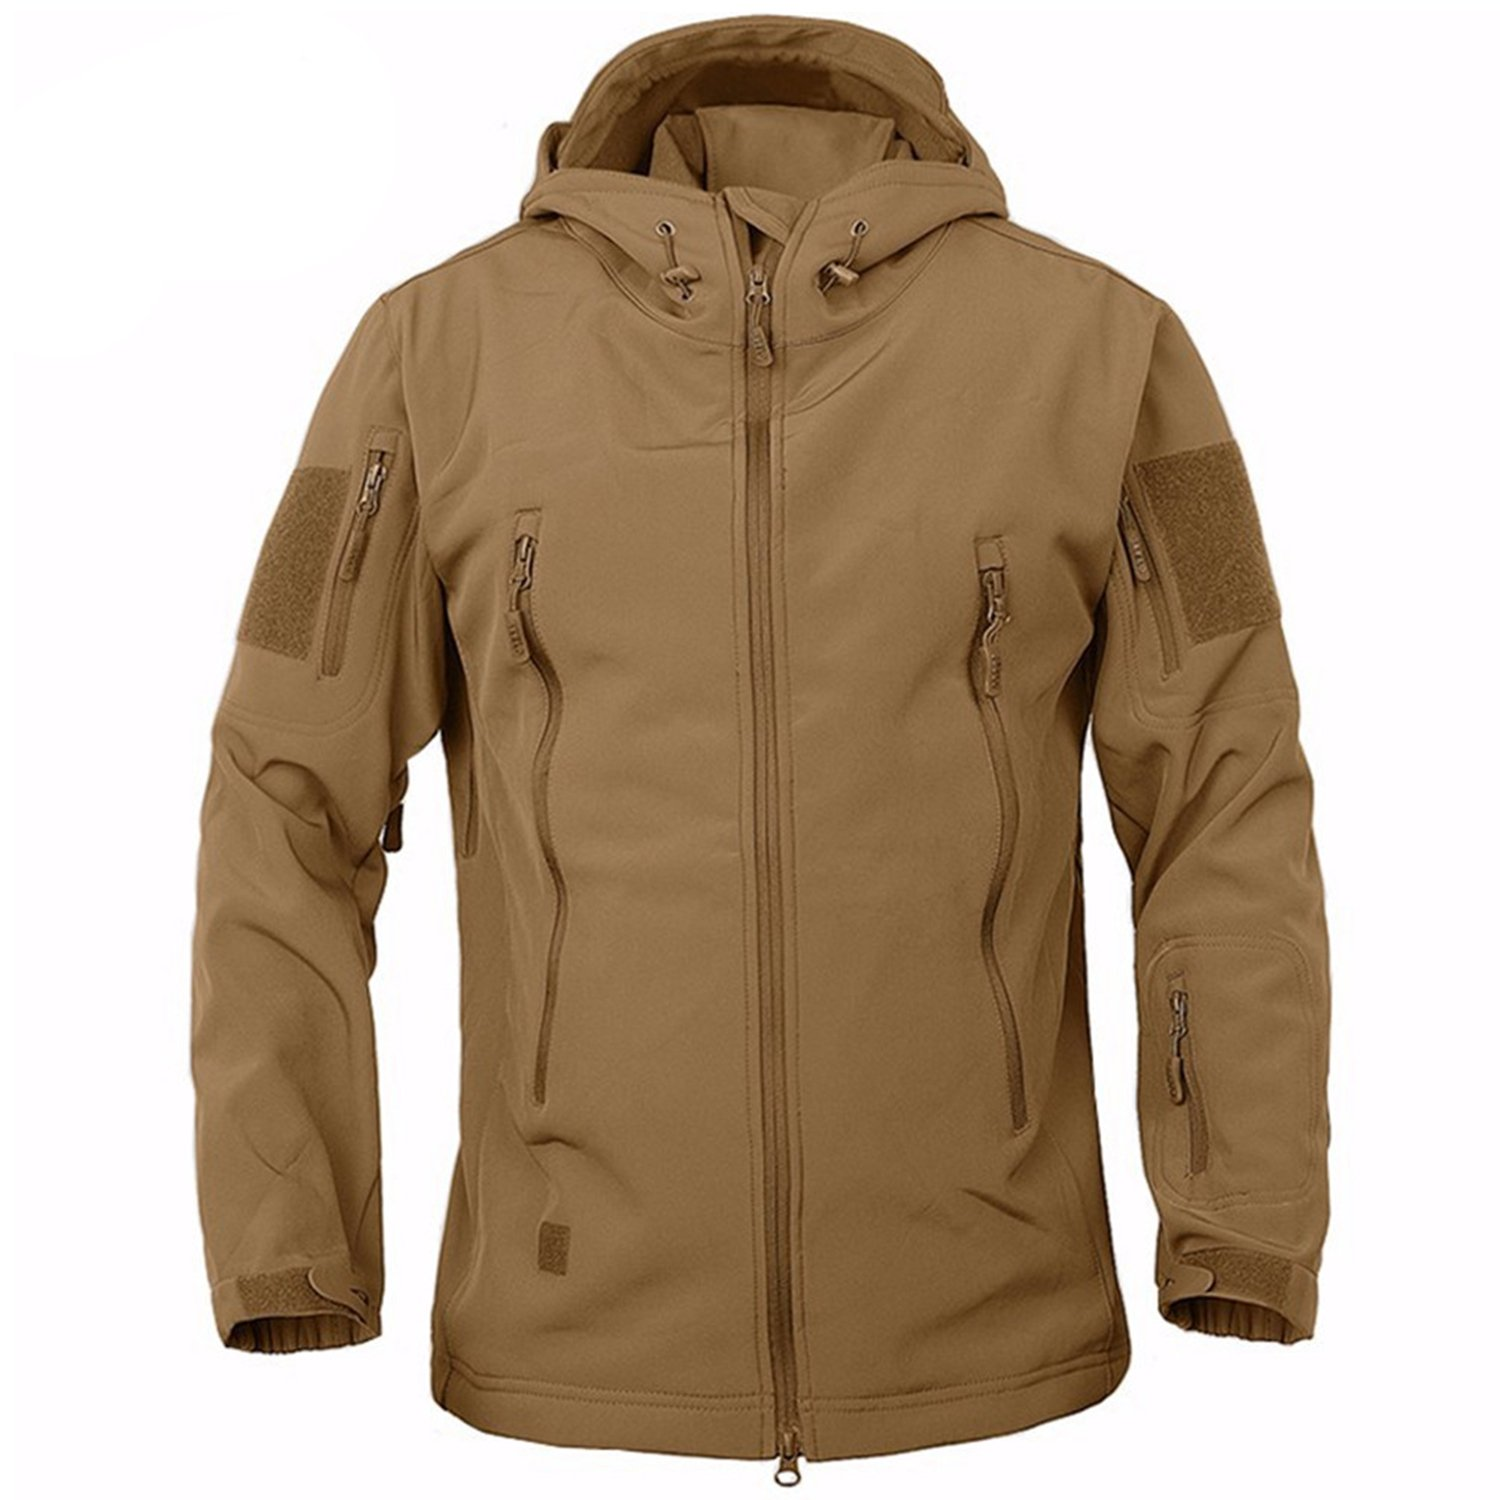 BELLOO Men Combat Jacket Waterproof Softshell Fleece Jacket With Hood BELLOO INT'L